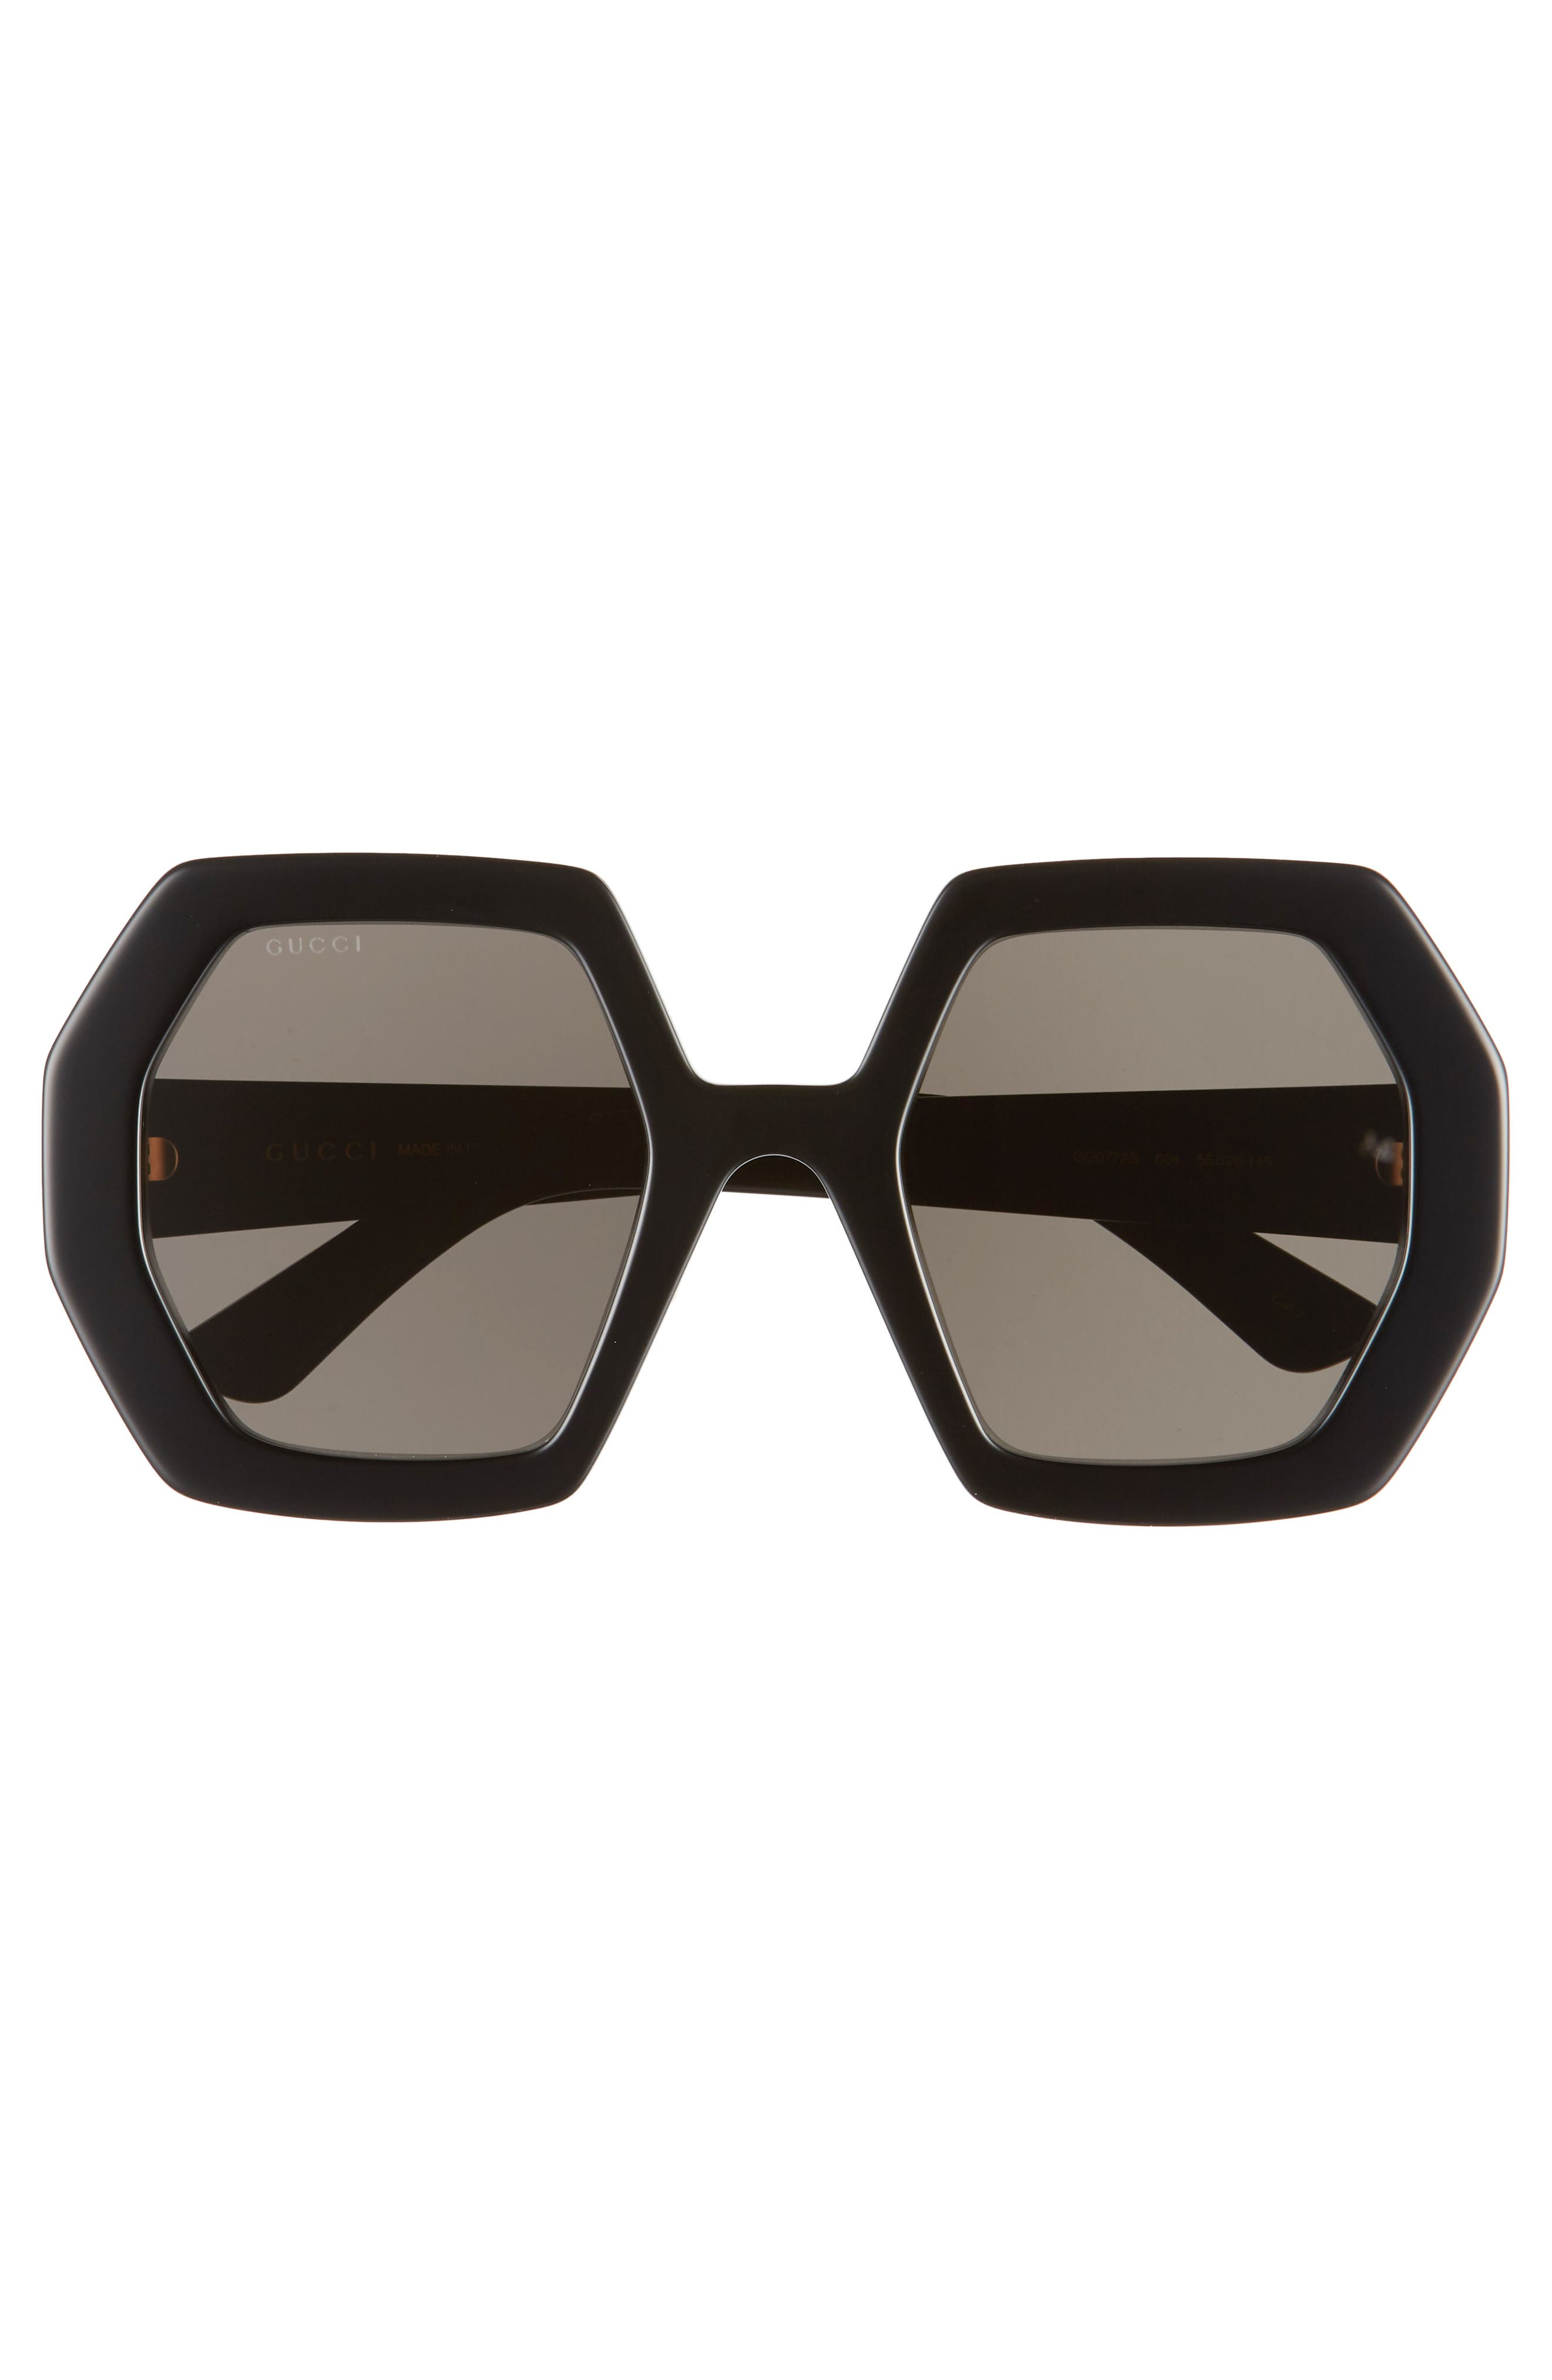 Bold, angular frames and logo hardware make these sunglasses so striking, while adjustable nose pads and lightweight nylon lenses help ensure a comfortable fit. Style Name: Gucci 55mm Angular Sunglasses. Style Number: 5978281. Available in stores.